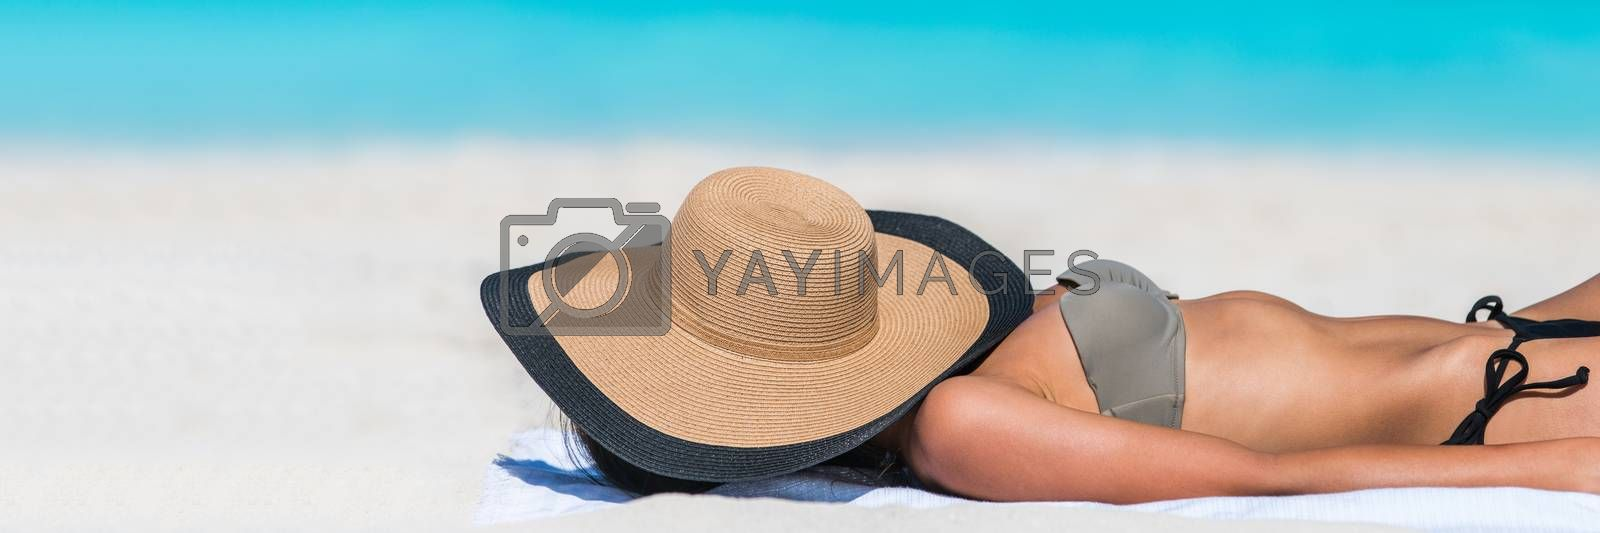 Beach relaxation woman sleeping with hat banner by Maridav